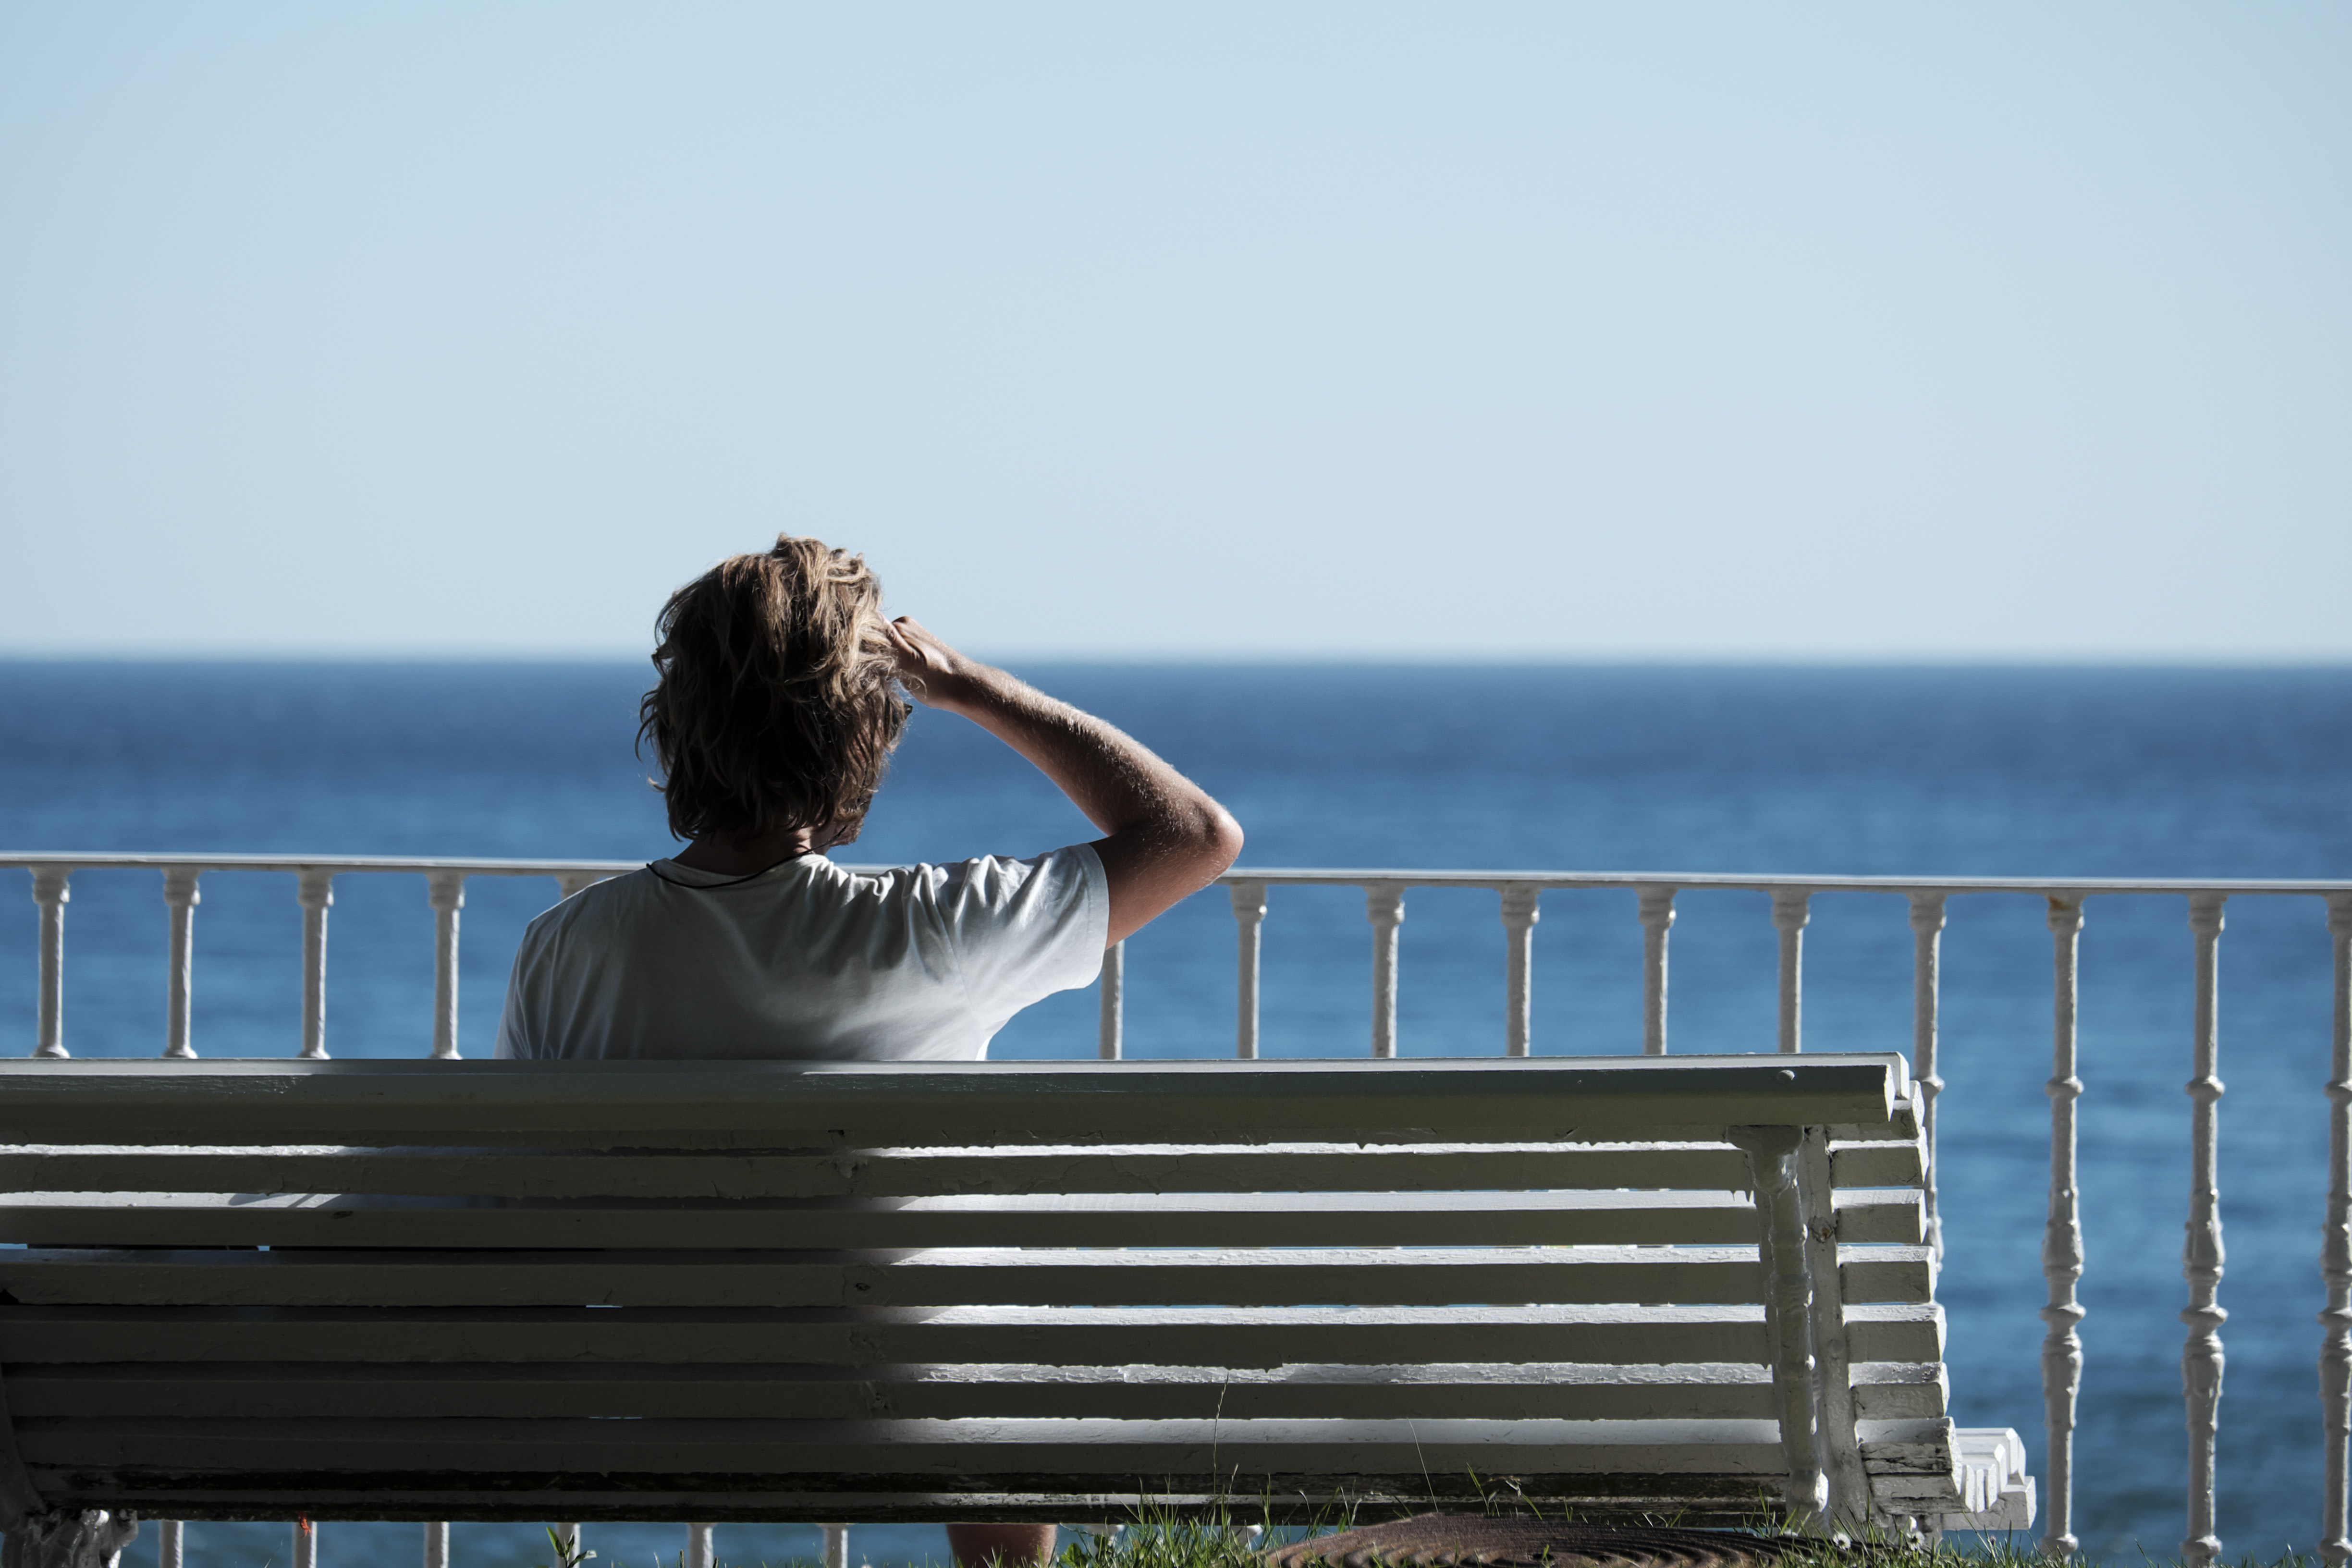 man sitting on bench near body of water during daytime